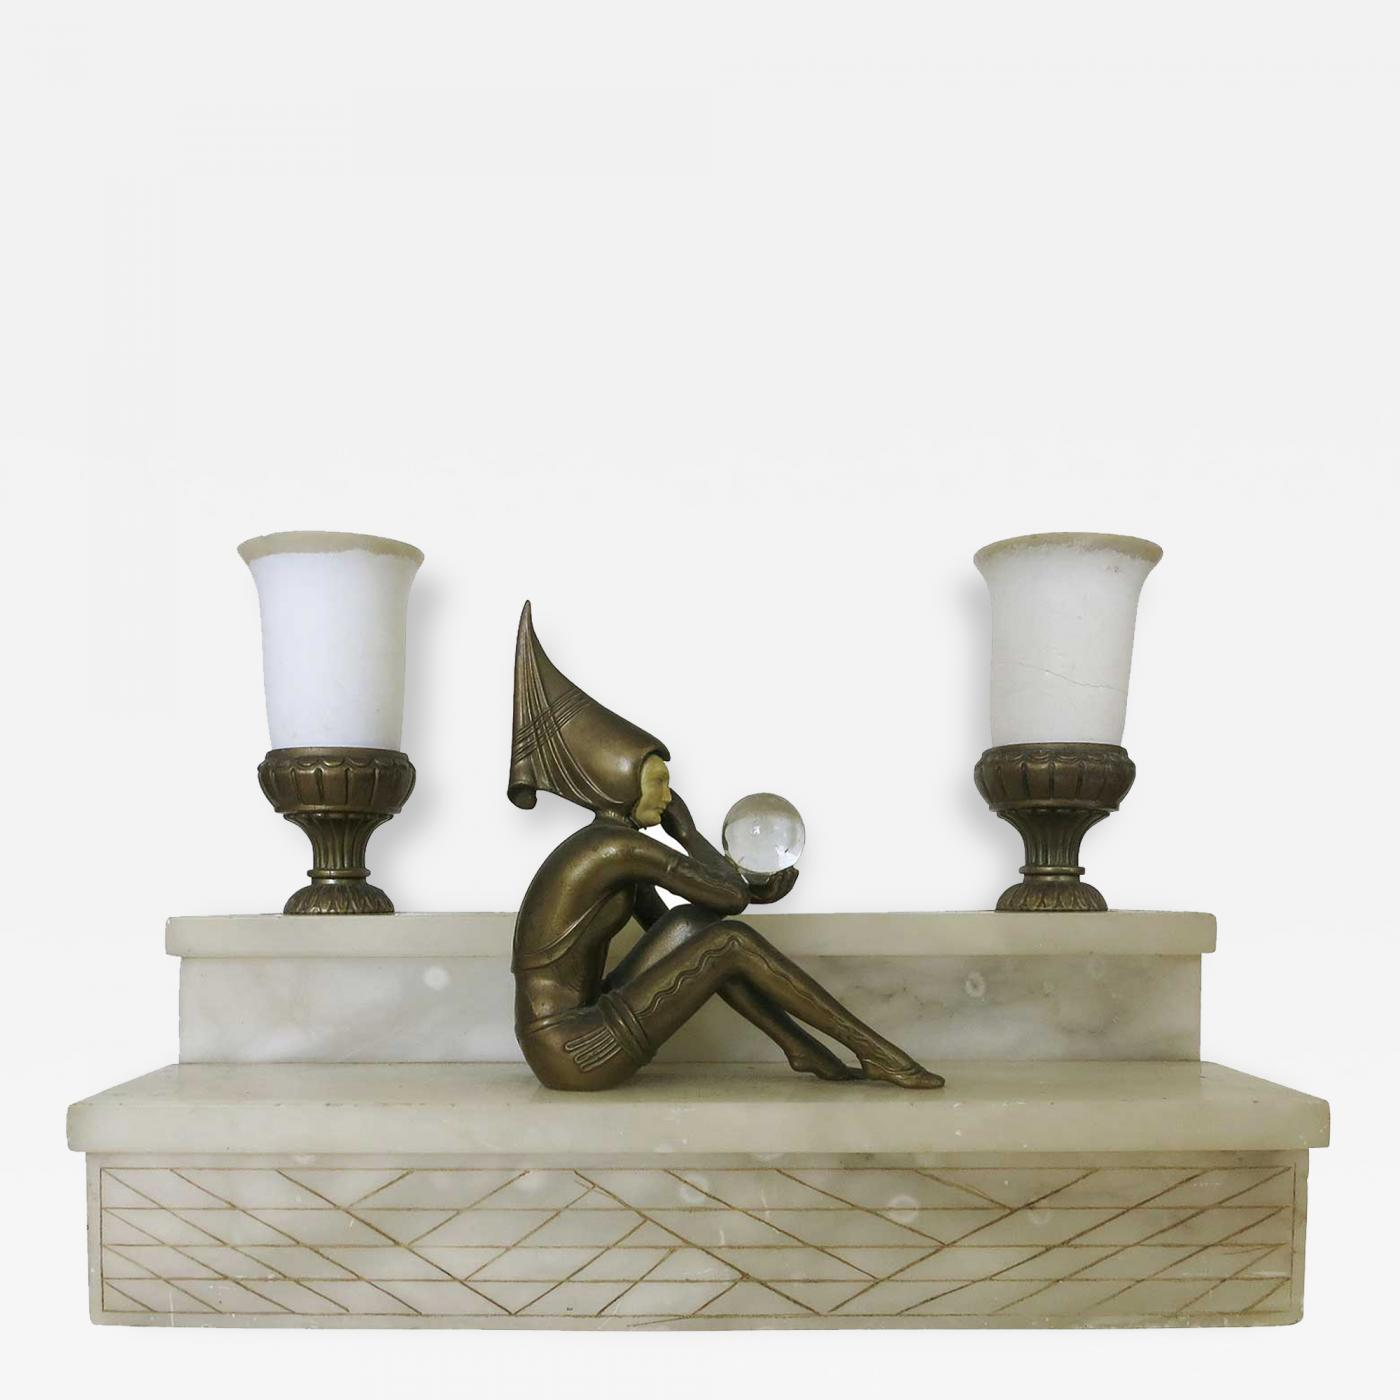 harlequin lighting hurricane lamp listings furniture lighting table lamps jb hirsch large stepped art deco harlequin lamp by